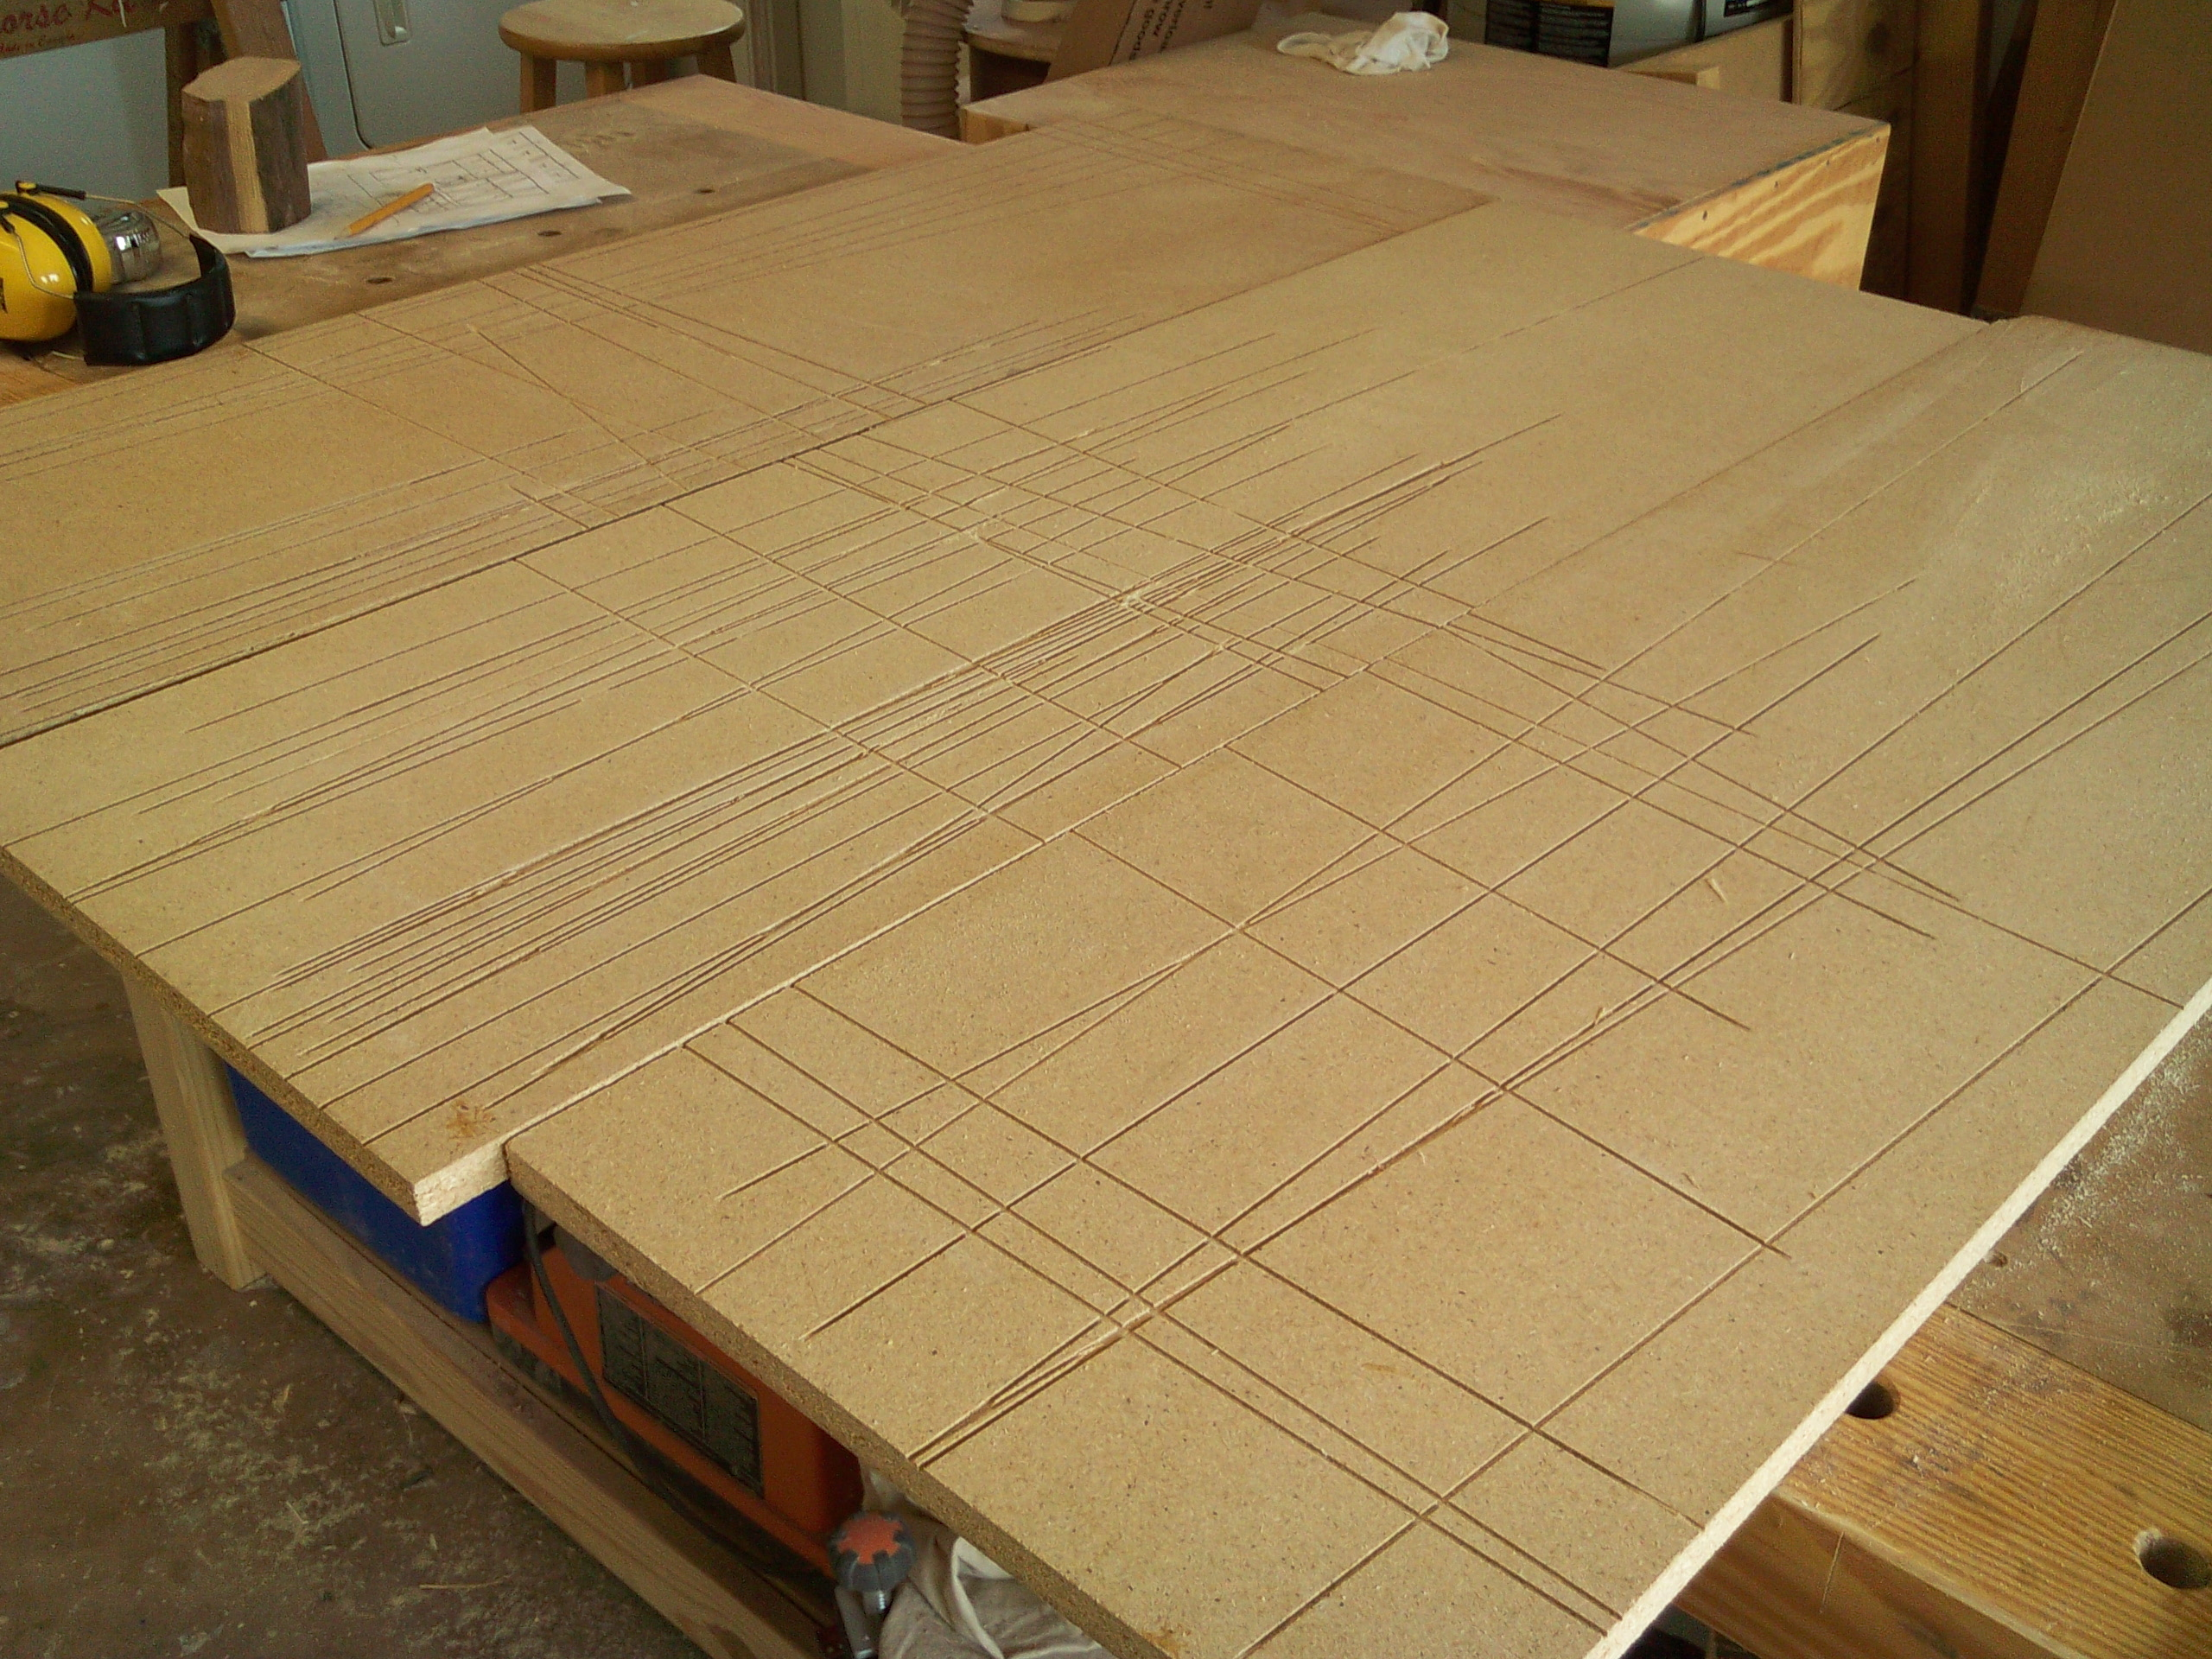 Particle board vs plywood - That S When I Fished Those Sheets Of Particleboard